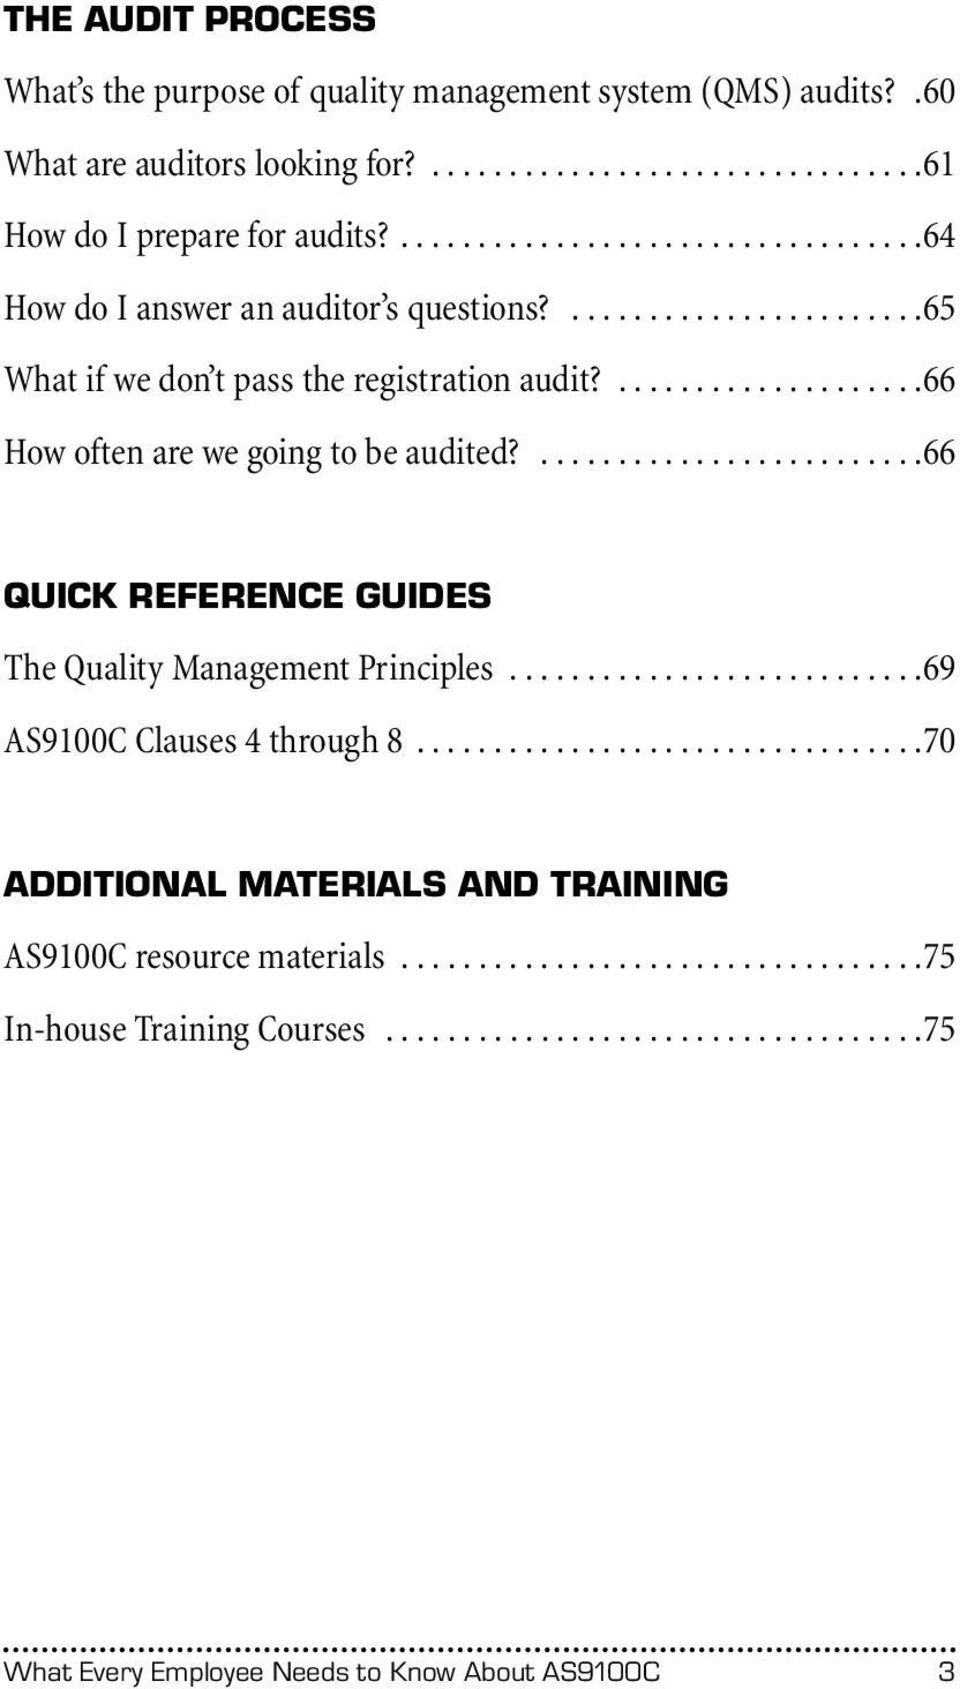 .........................66 QUICK REFERENCE GUIDES The Quality Management Principles...........................69 AS9100C Clauses 4 through 8.